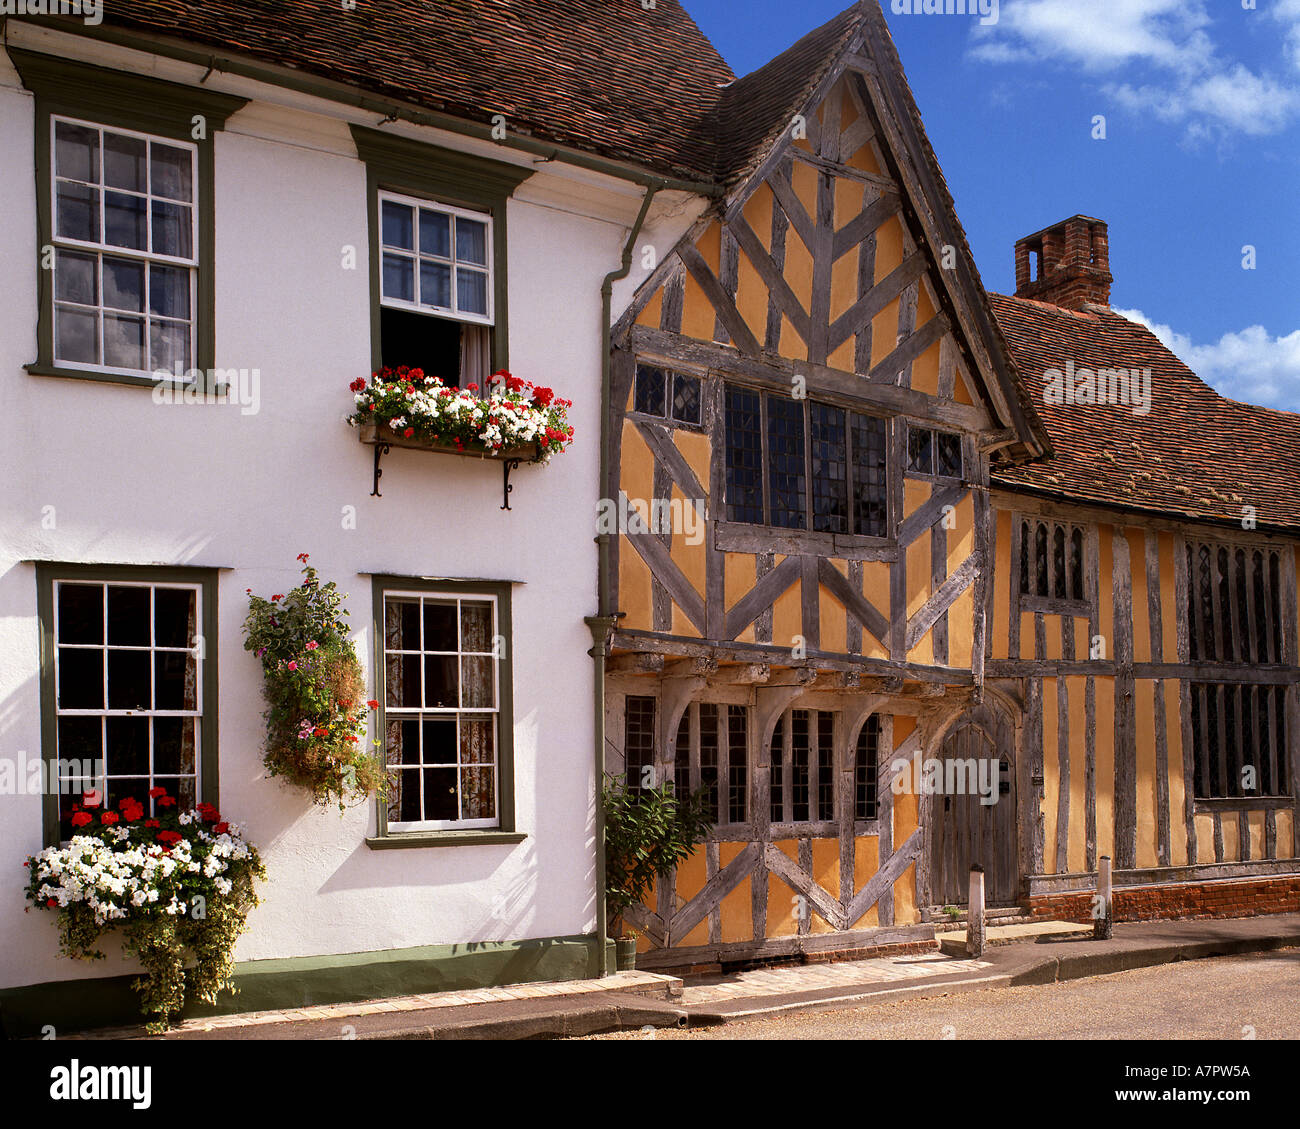 GB - SUFFOLK: Little Hall at Lavenham - Stock Image